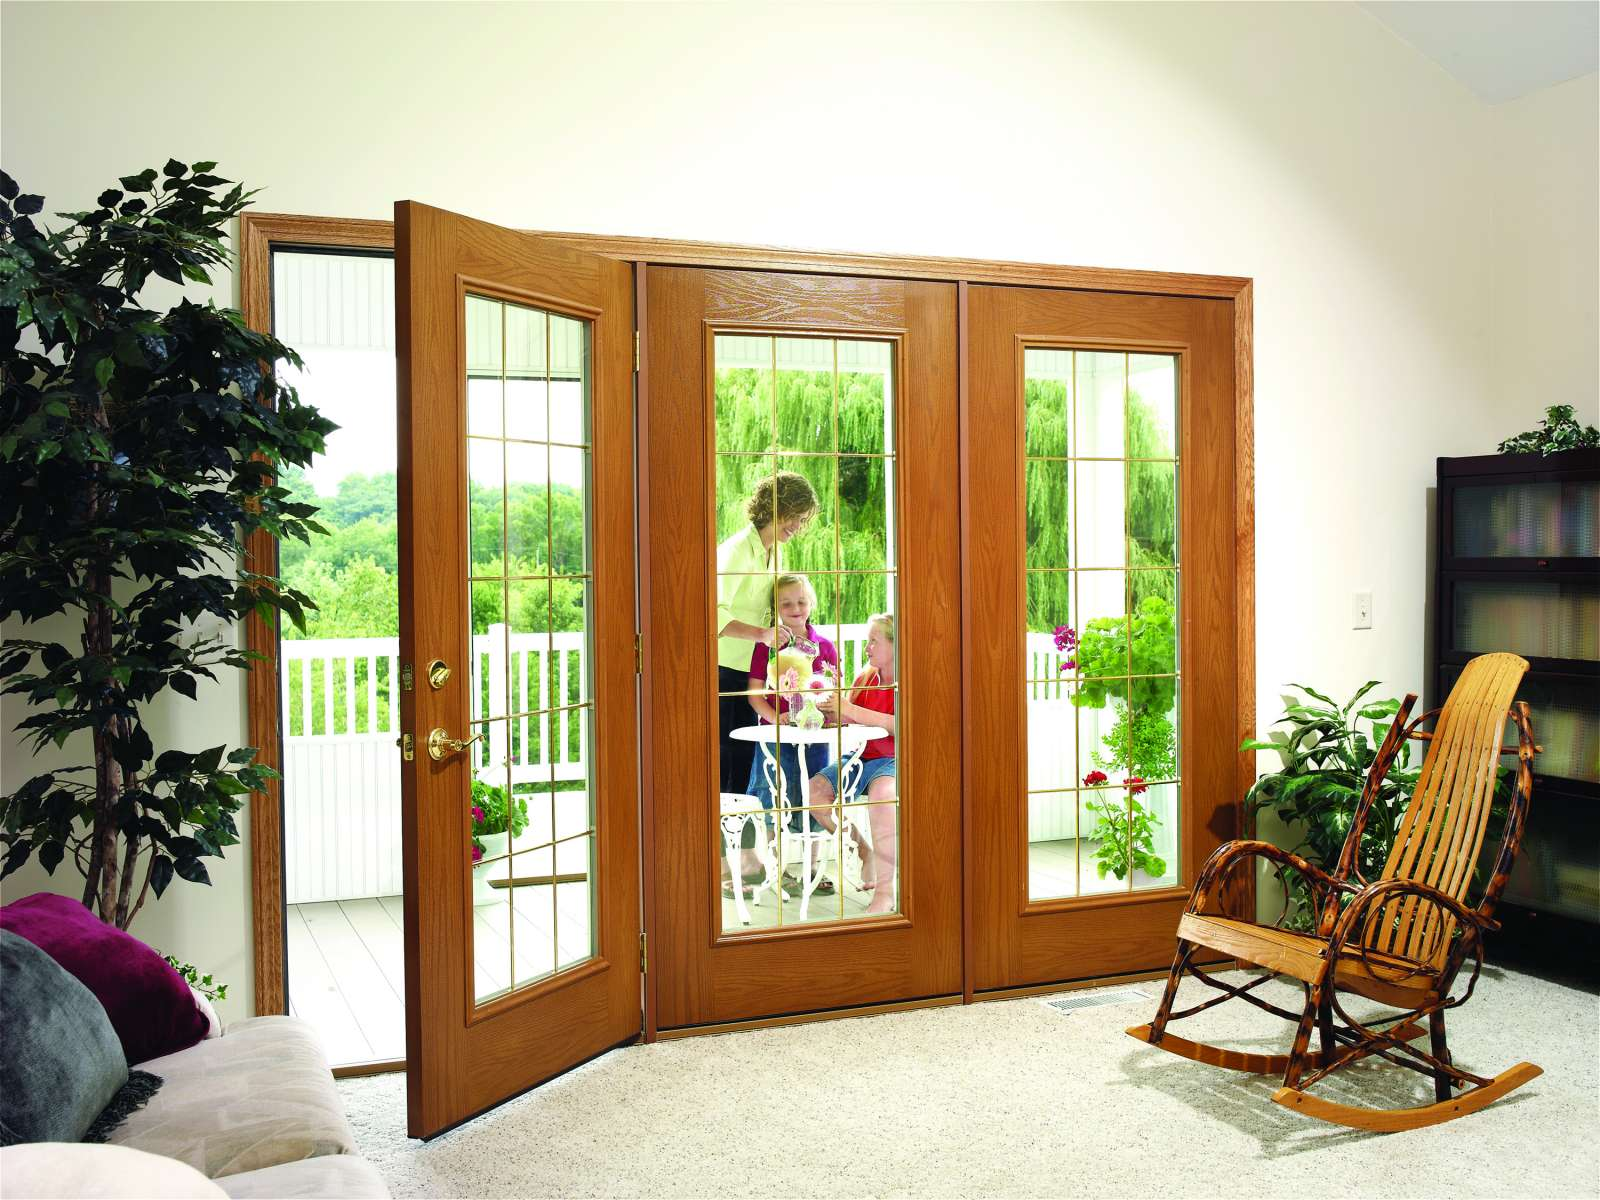 Patio Swing Doors  Doors  Patio Doors  Products. Majestic Patio Furniture Burlington Nc. Outdoor Dining Table No Umbrella Hole. Patio Furniture For Sale In Delaware. Patio Furniture Covers For Deep Seating Furniture. Walmart Patio Furniture Glider. Patio Tables And Chairs For Sale. Patio Furniture Seat Fabric. Lowes Patio Furniture Sets Clearance Canada